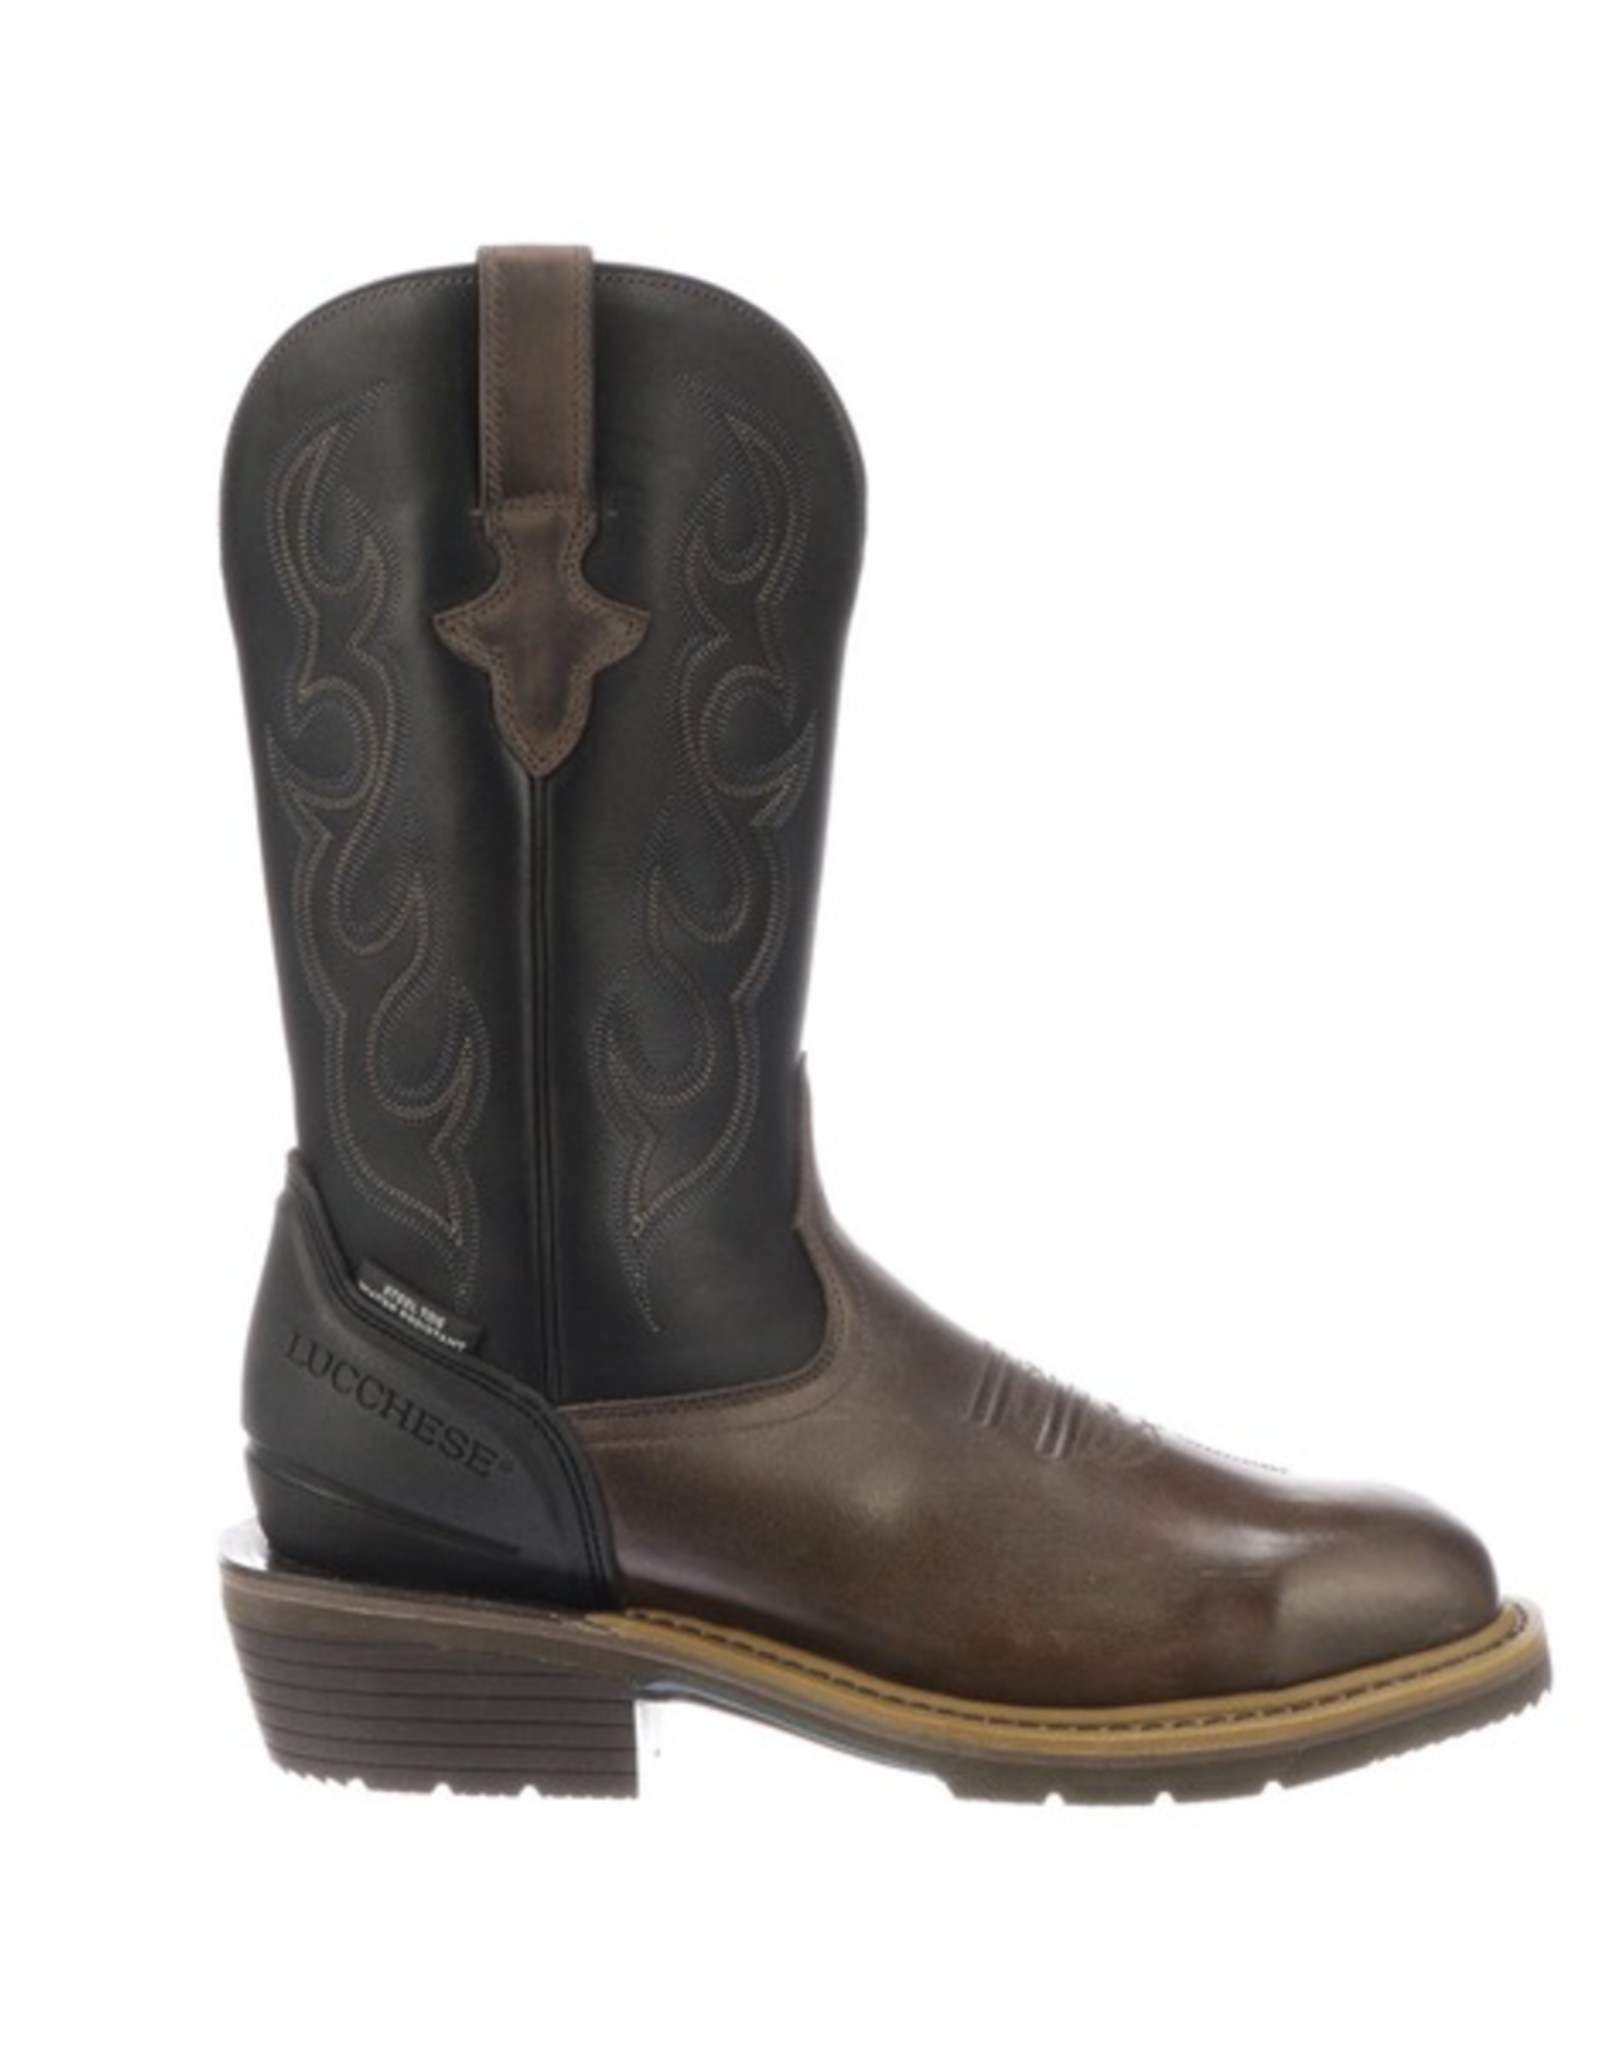 Lucchese Lucchese Western Waterproof Boots